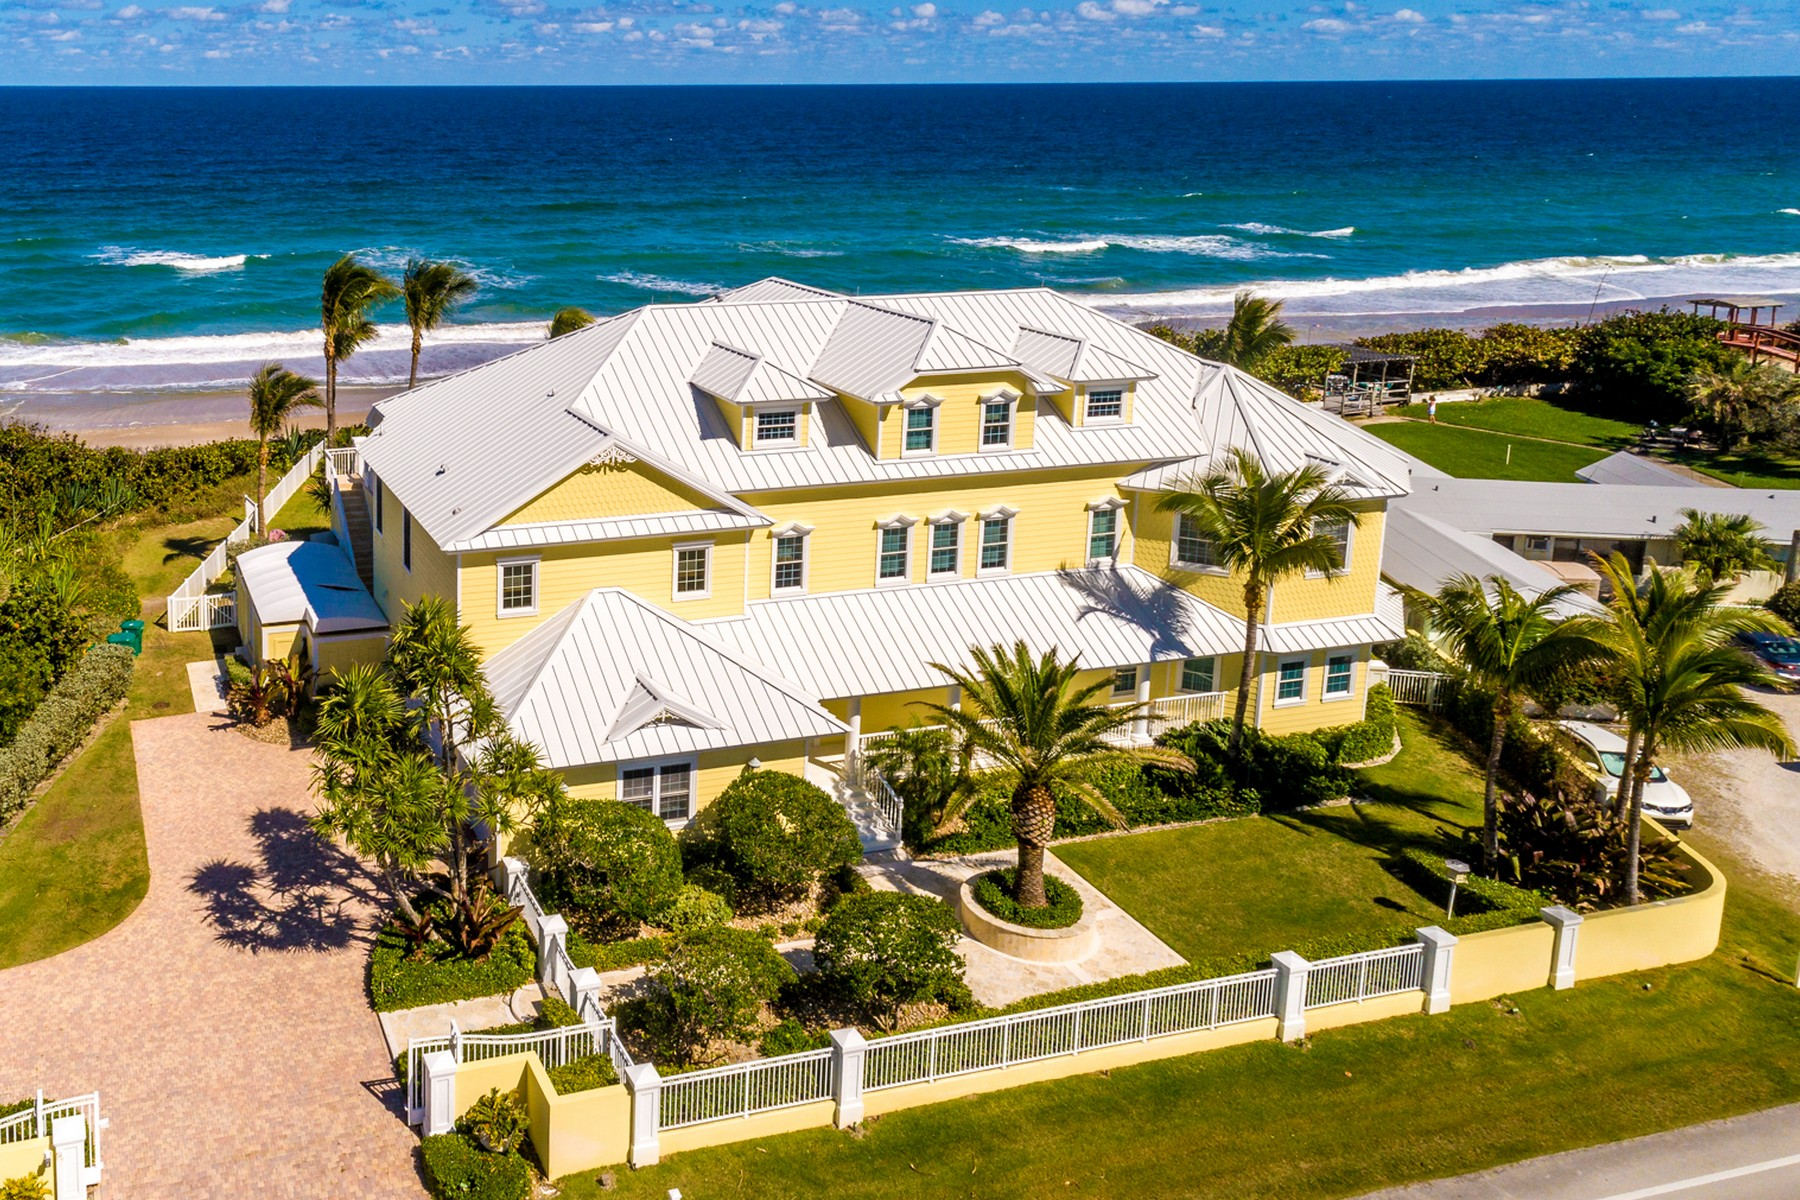 Tek Ailelik Ev için Satış at Gorgeous Tropically Landscaped Home with Endless Ocean Vistas 5045 S Highway A1A Melbourne Beach, Florida 32951 Amerika Birleşik Devletleri